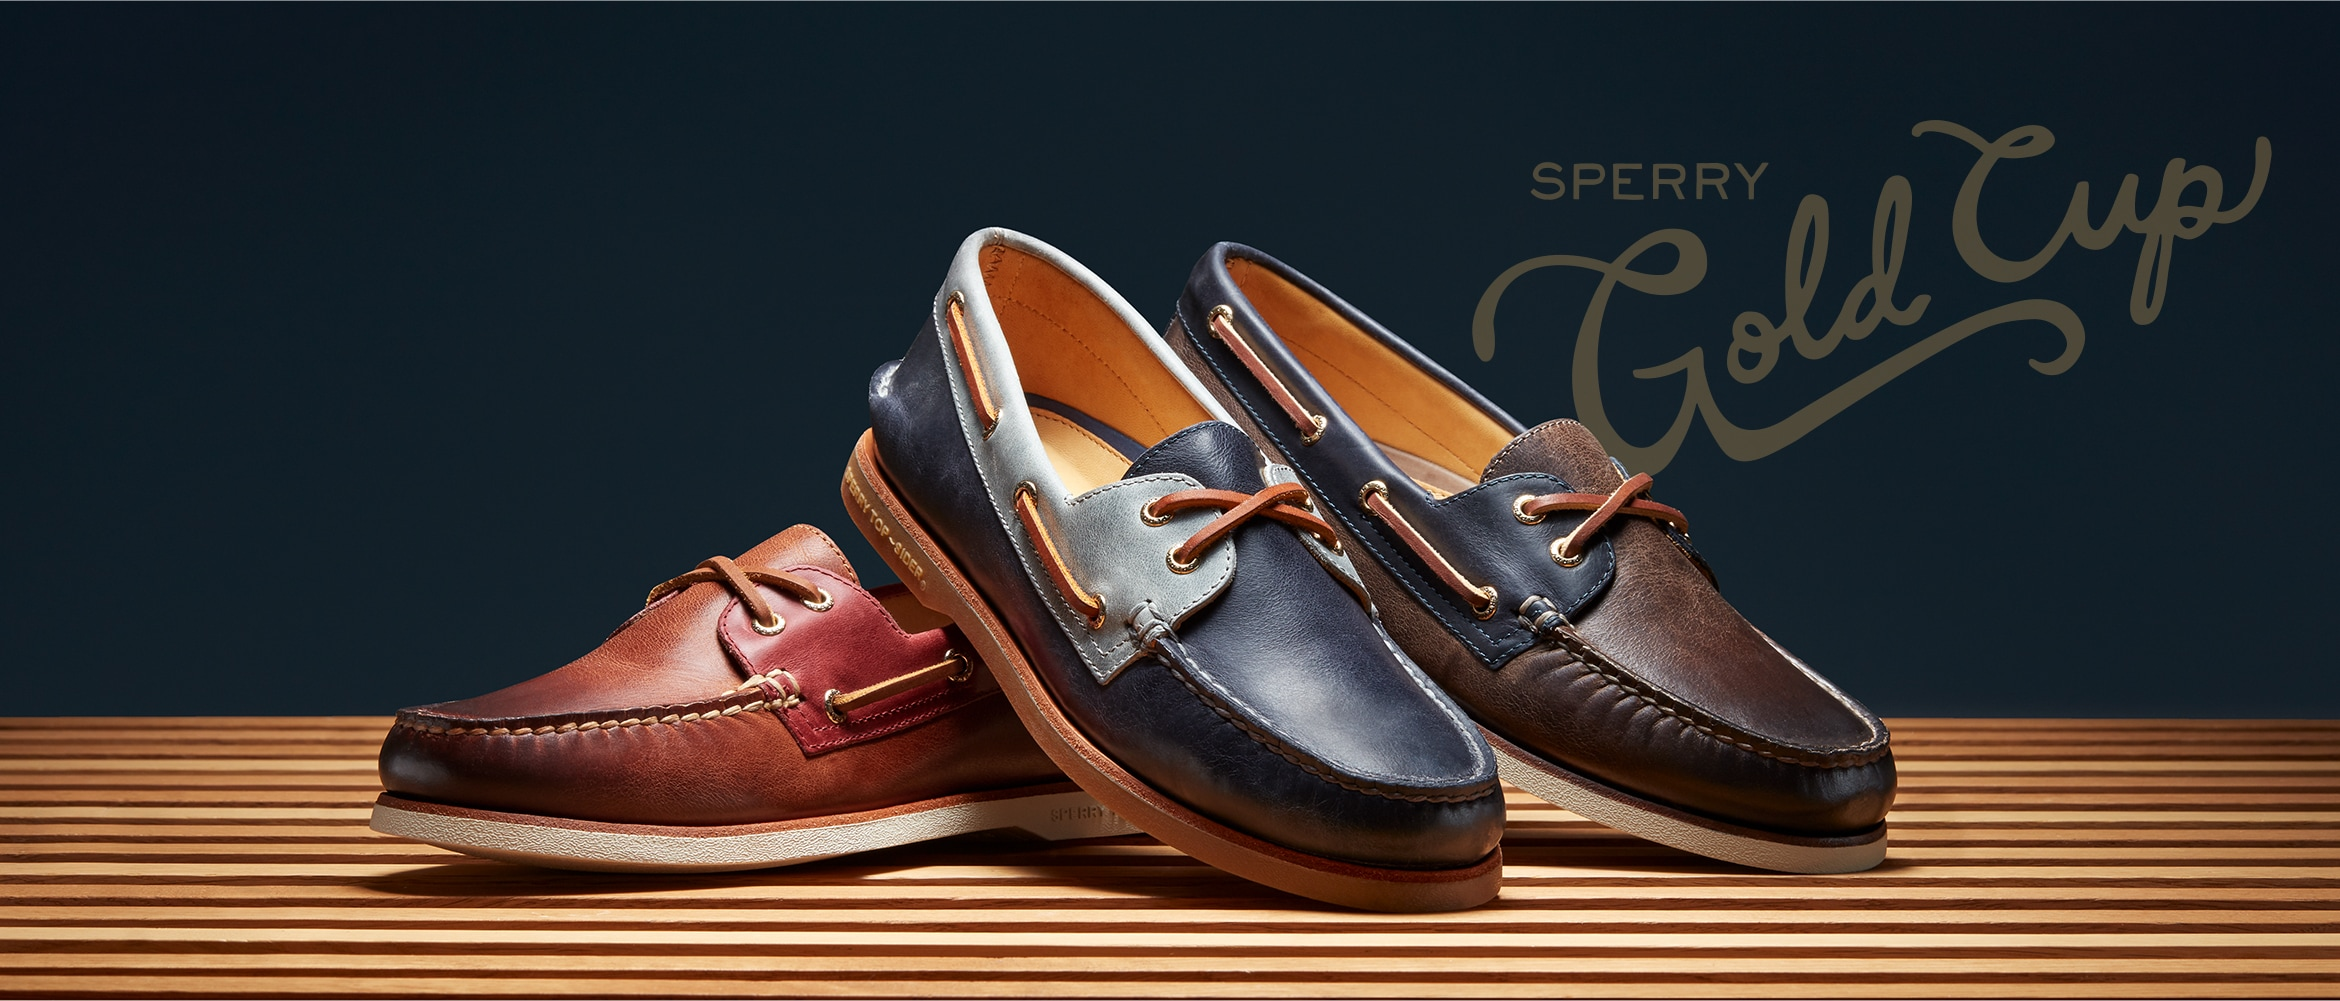 3 Authentic Orignal Shoes on a decorative wood floor.